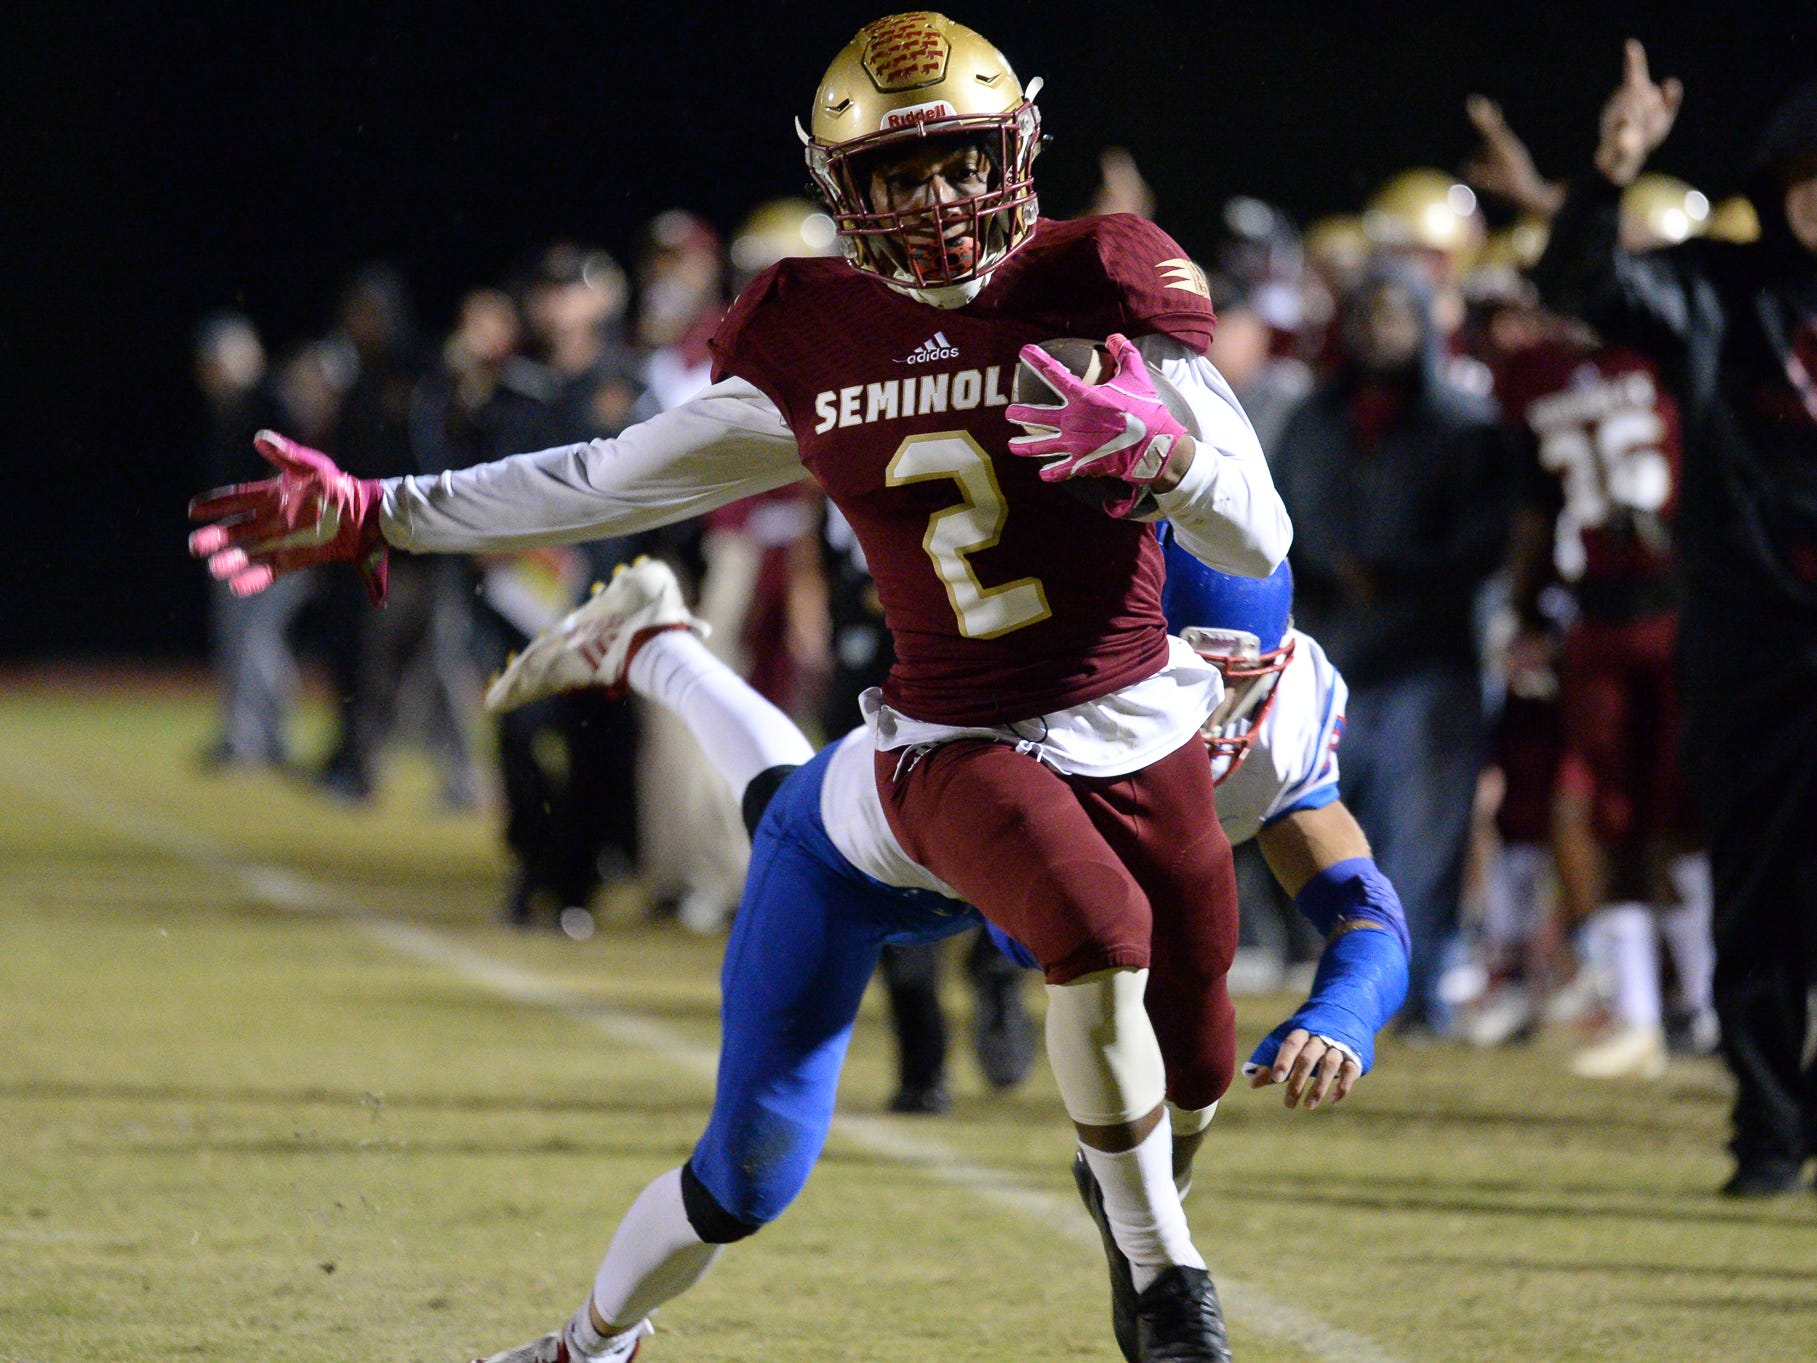 Florida High's Javan Morgan carries the ball for a touchdown against King's Academy Lions in the Class 3A state semifinal on Nov. 30, 2018.